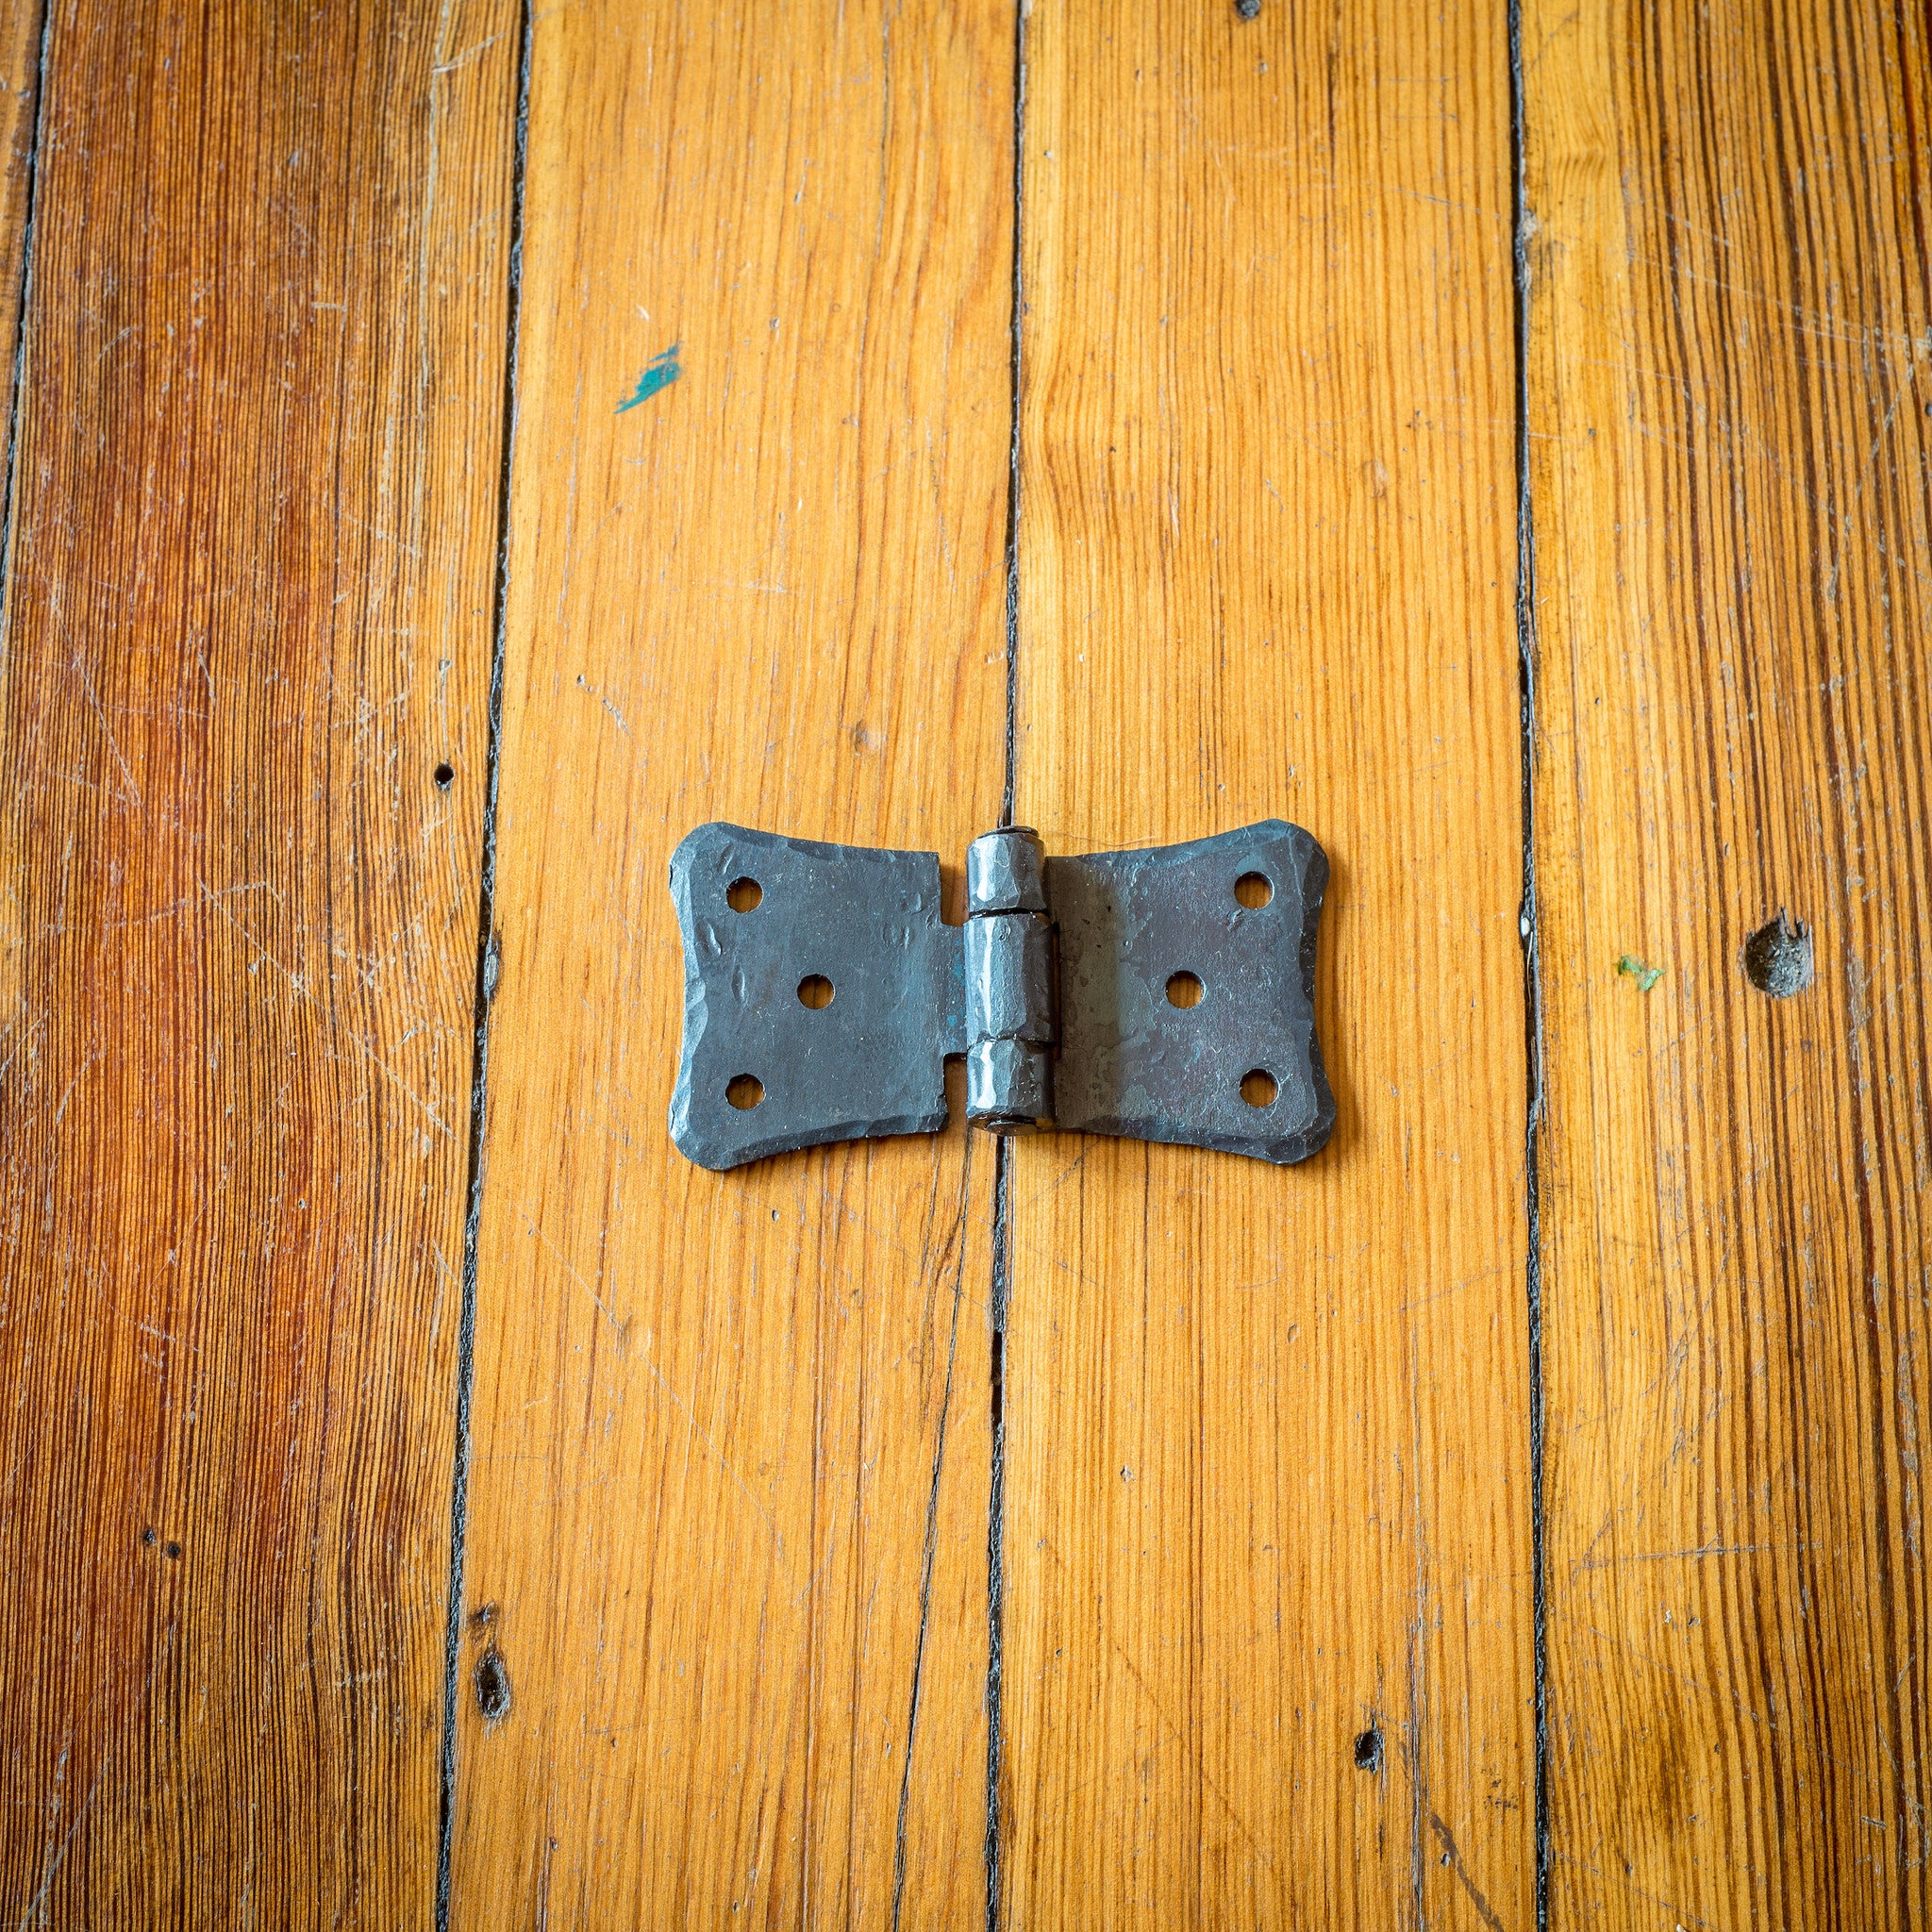 bless install com tutorial show blesserhouse to doors hinges of house barns er barn a quick how sliding